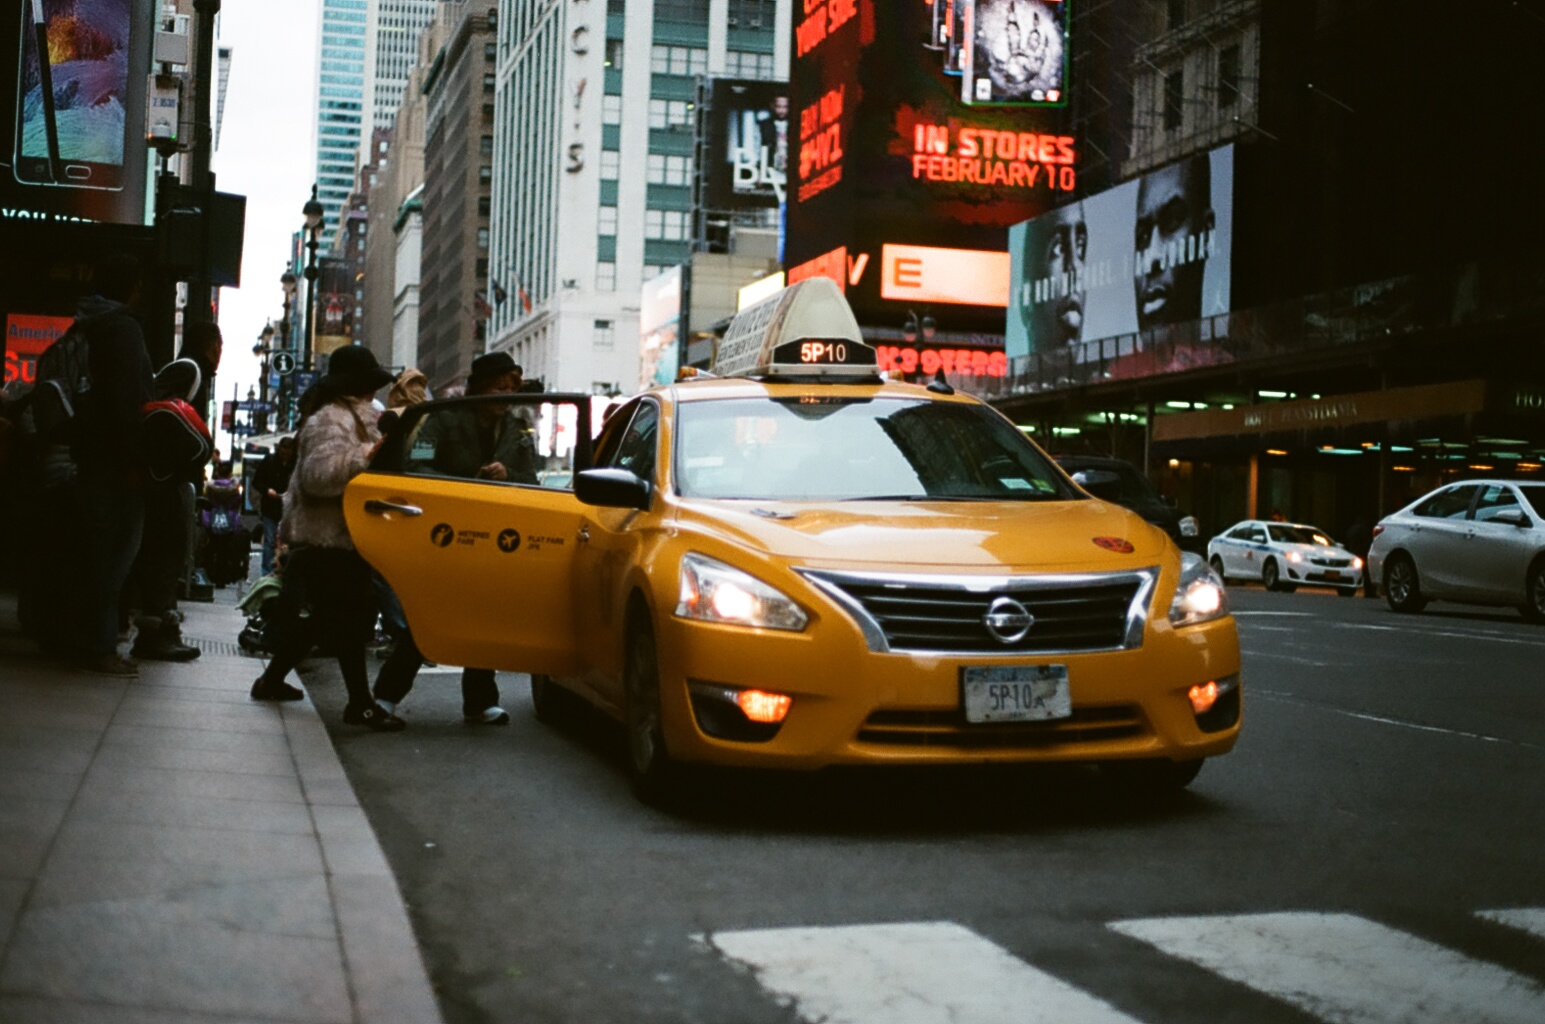 Going Analog, Full 35mm Photography Kit, Taxi times square